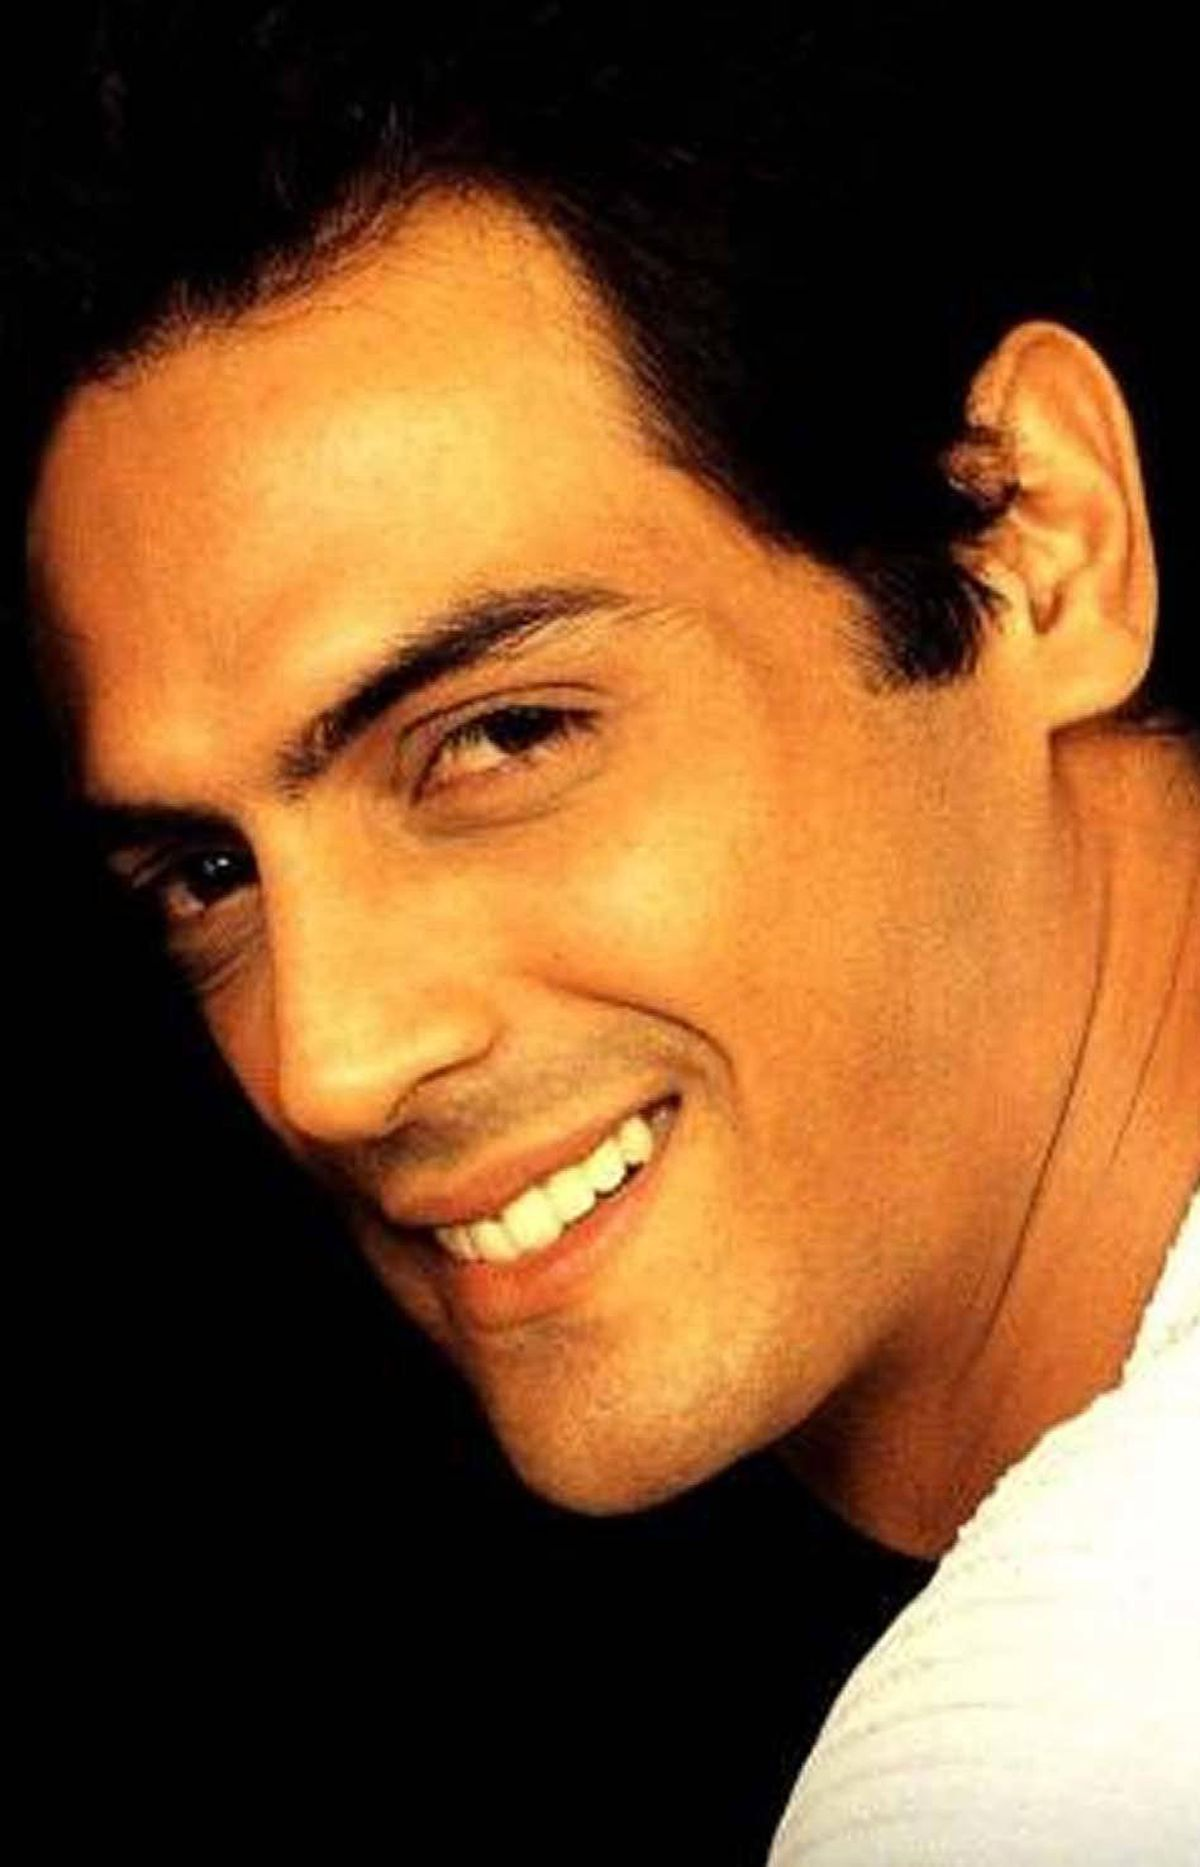 Arjun Rampal No stranger to the spotlight, fashion model turned actor Rampal has been in a steady stream of films since his debut in the early 2000s. Though his first two flicks, Moksha and Pyaar Ishq Aur Mohabbat did poorly at the box office, his performances were praised by critics and in 2002 he was awarded the coveted Face of the Year title from the International Indian Film Academy (IIFA). Most recently, the hunky actor earned acclaim for his villainous role inwhat has become one of the biggest hits in the history of Bollywood, 2007's Om Shanti Om which is still popular. Currently he is nominated for IIFA's best performance in a supporting role - male for the film Raajneeti.